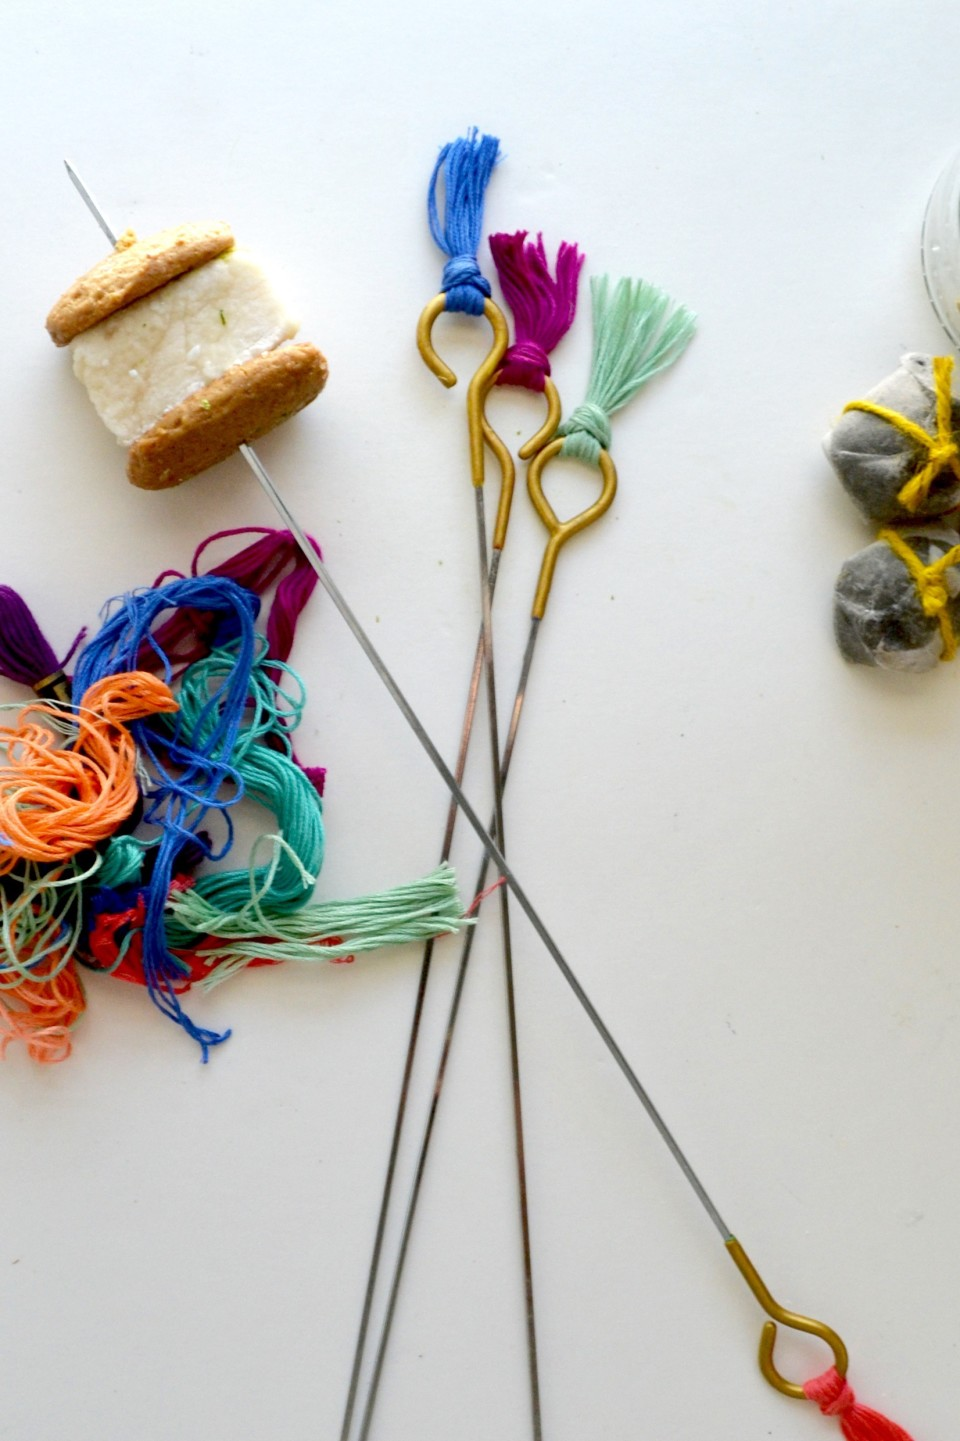 DIY roasting sticks spruced up with colorful tassels